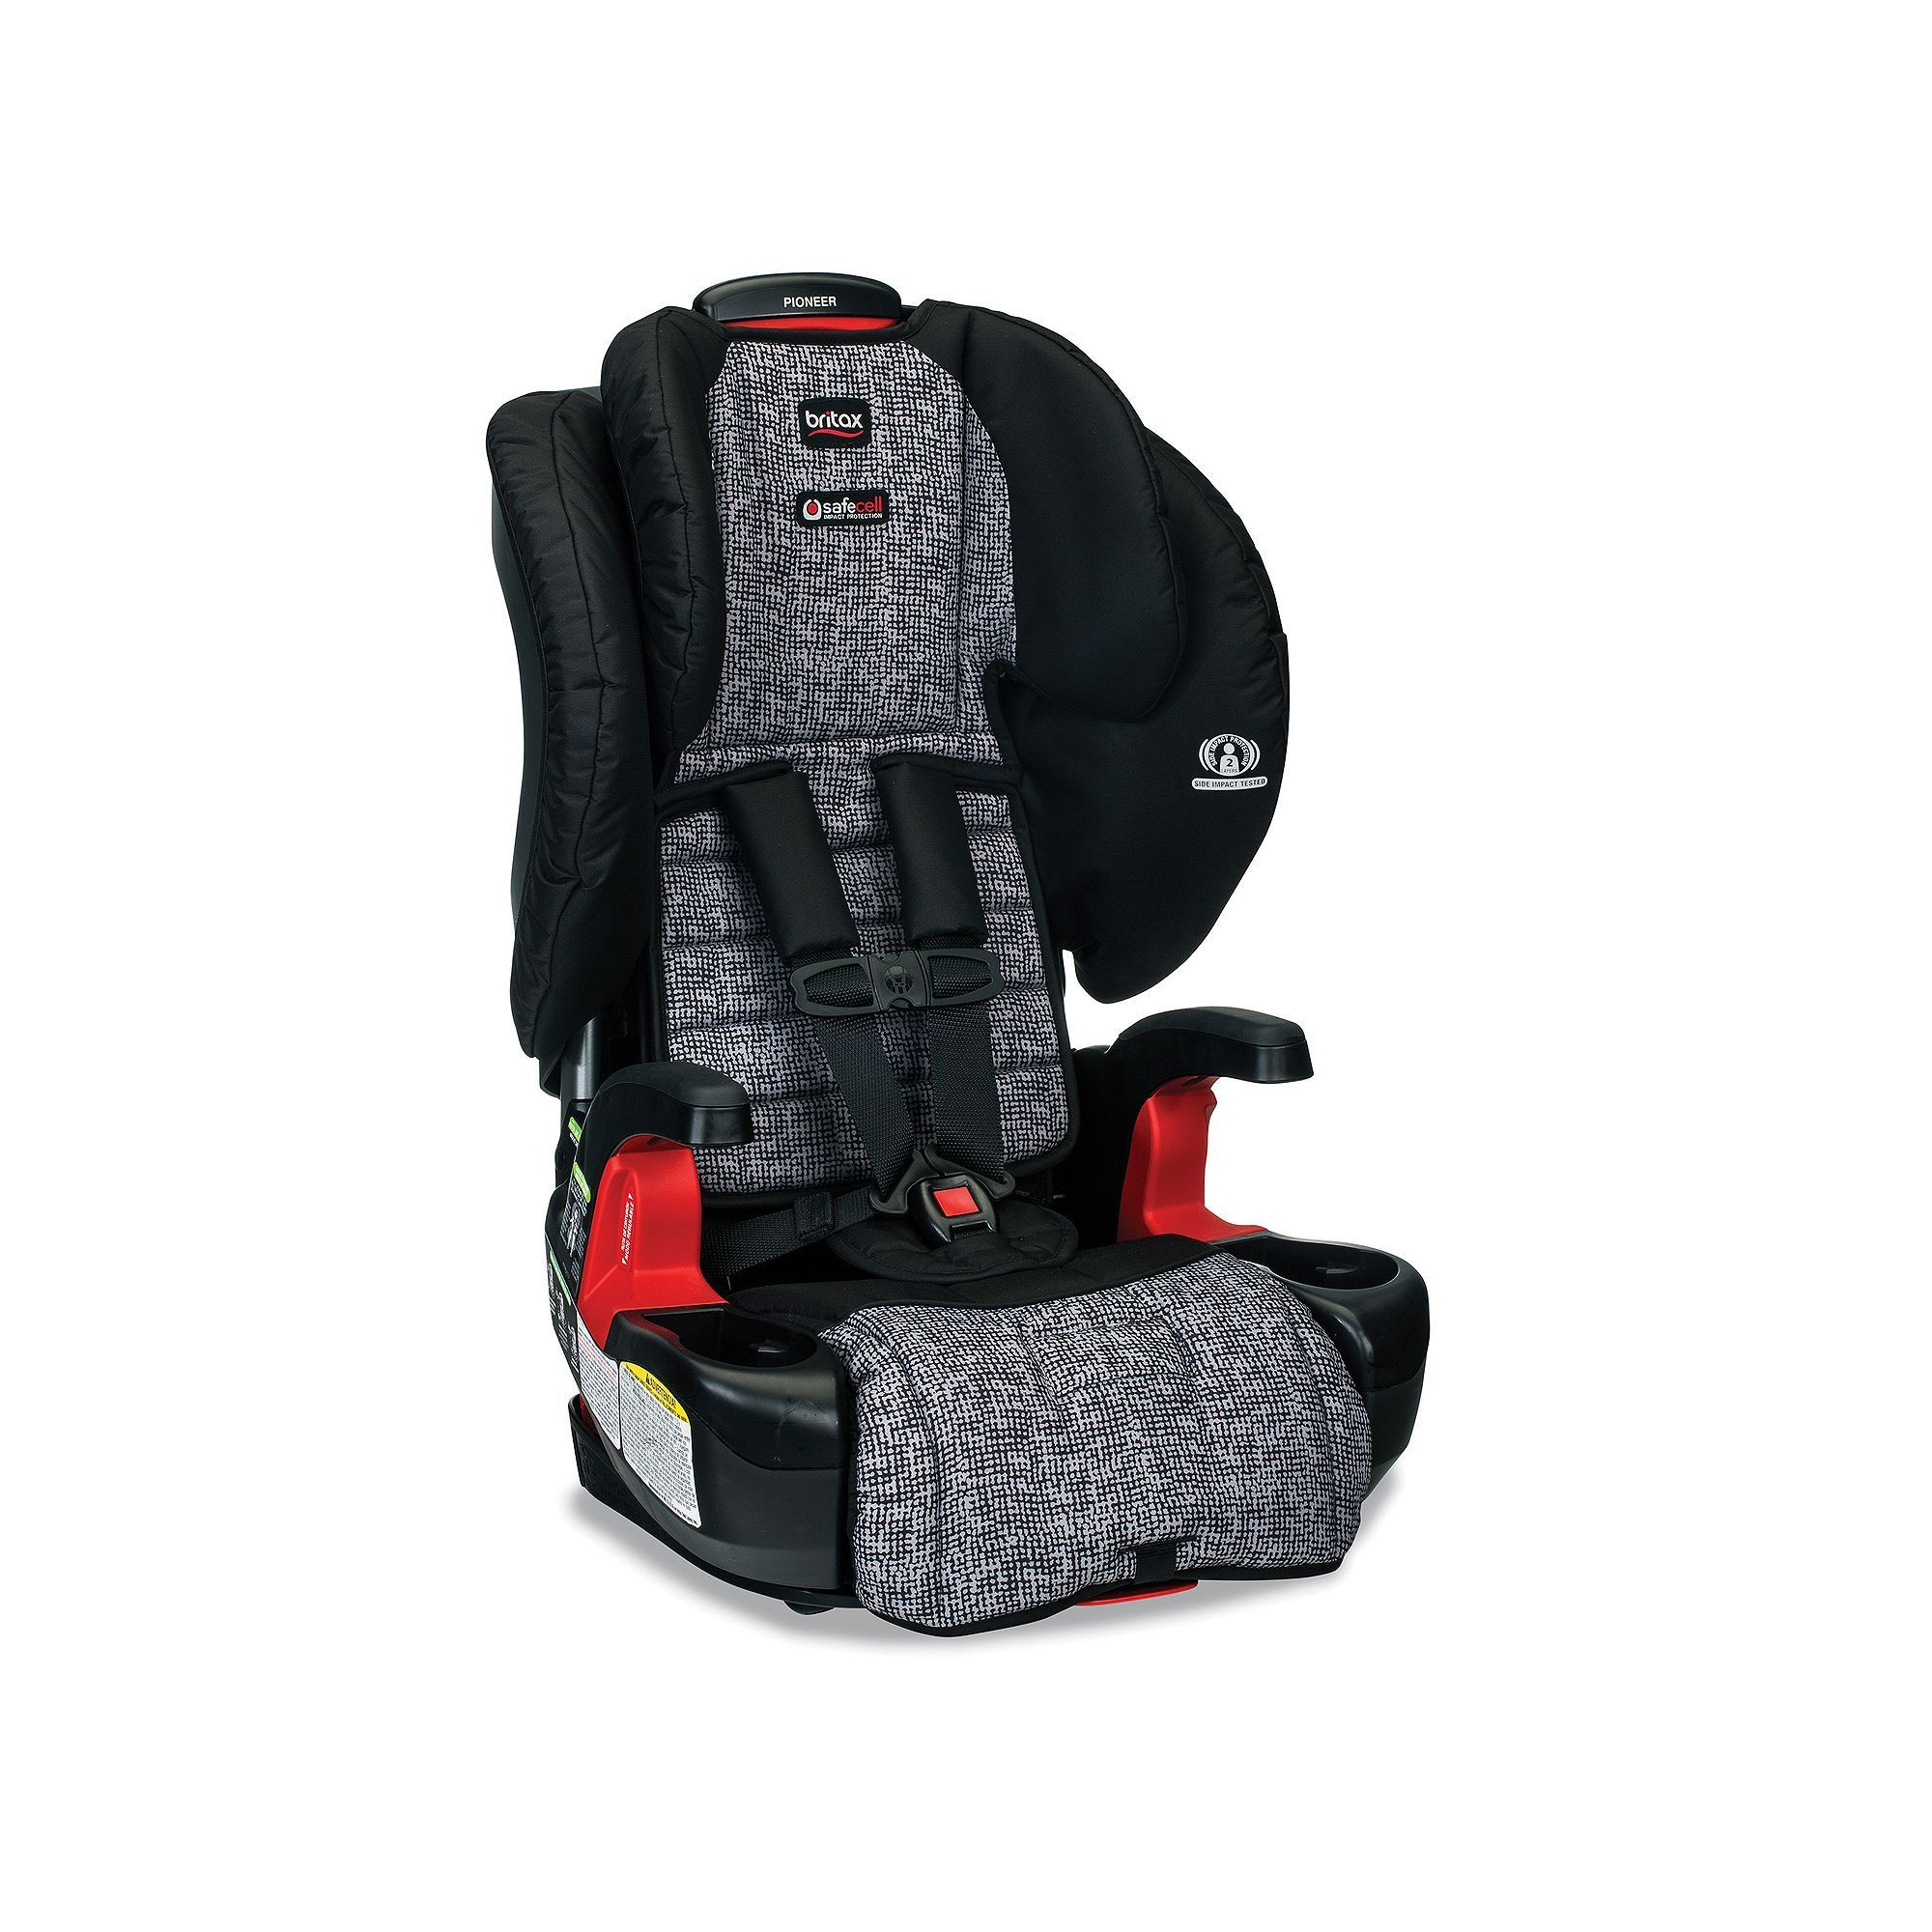 Britax Pioneer G11 Harness 2 Booster Car Seat Multicolor